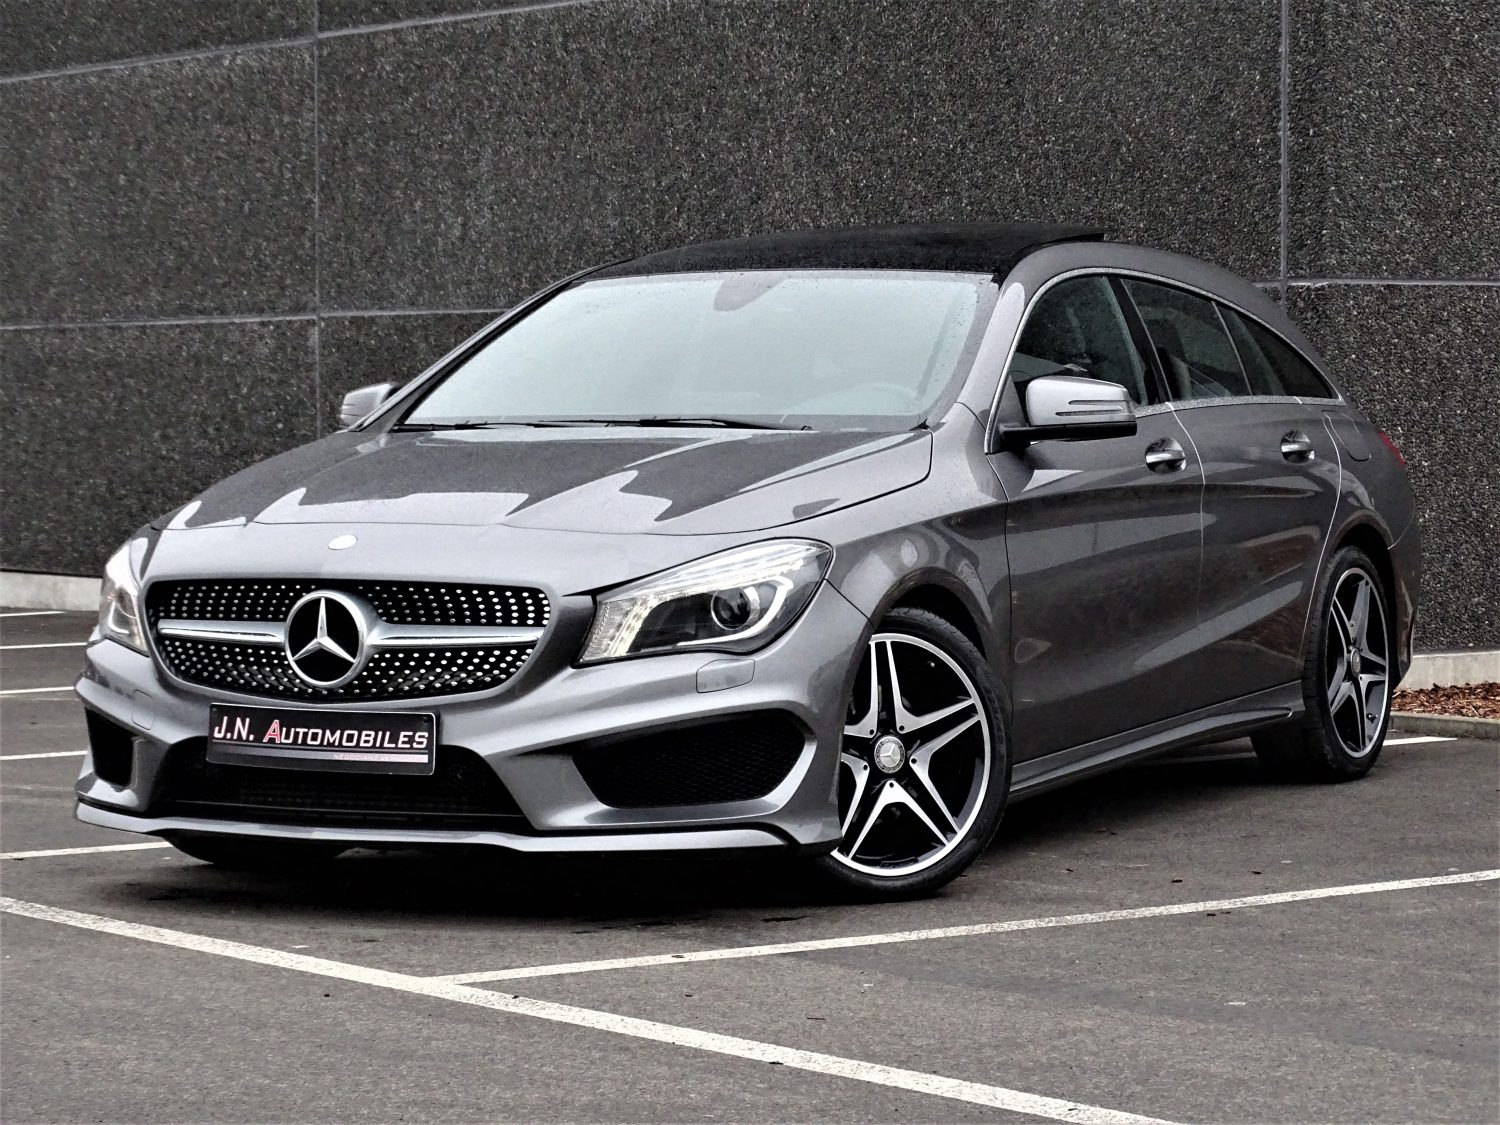 mercedes benz cla 200 shooting brake amg vendue j n automobiles. Black Bedroom Furniture Sets. Home Design Ideas